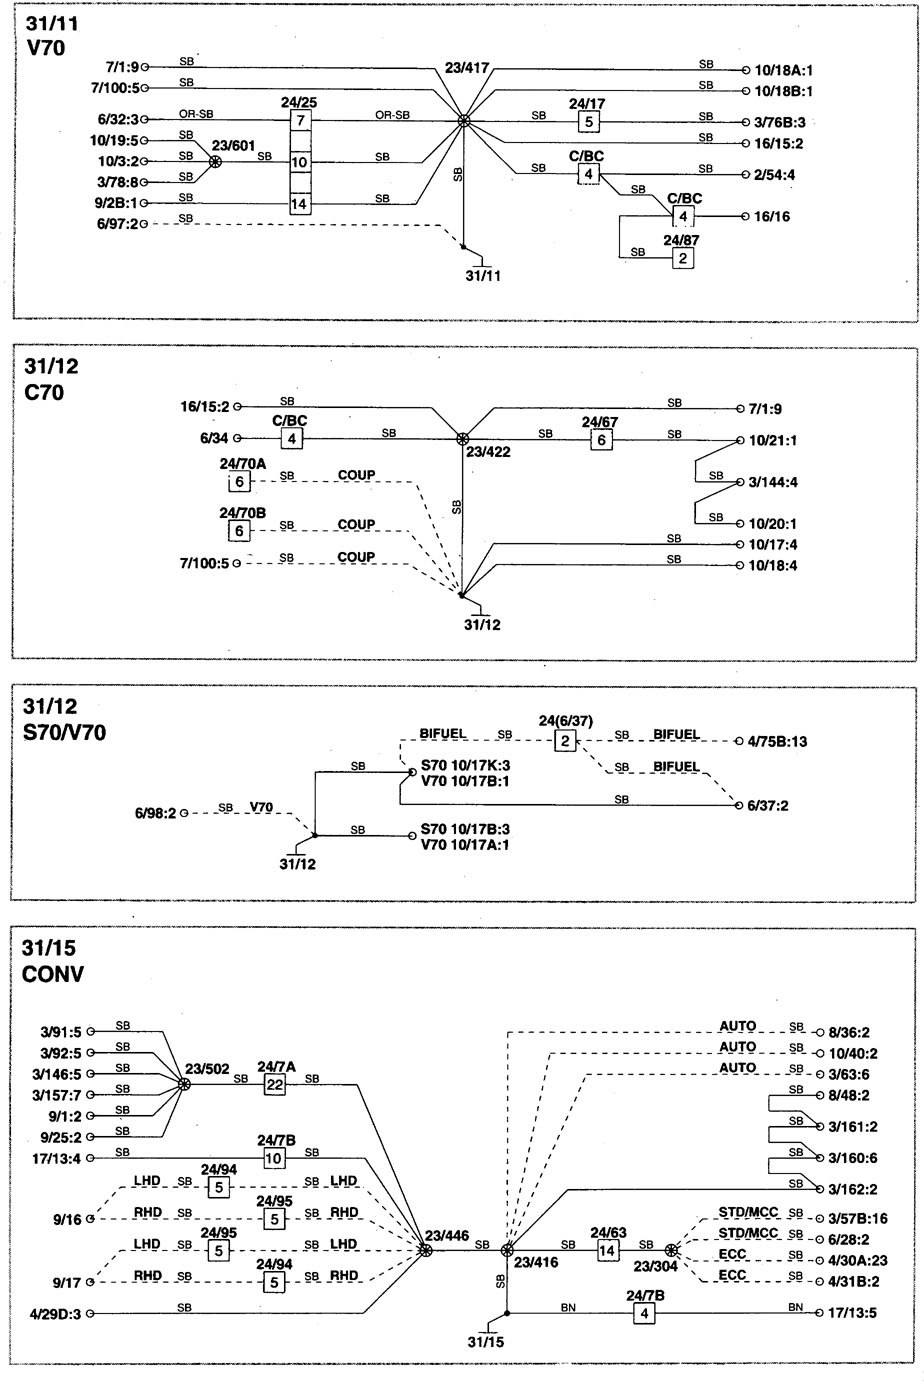 volvo c70 wiring diagram ground distribution 3 1999 volvo c70 (1999 2004) wiring diagrams ground distribution c70 wiring diagram at alyssarenee.co